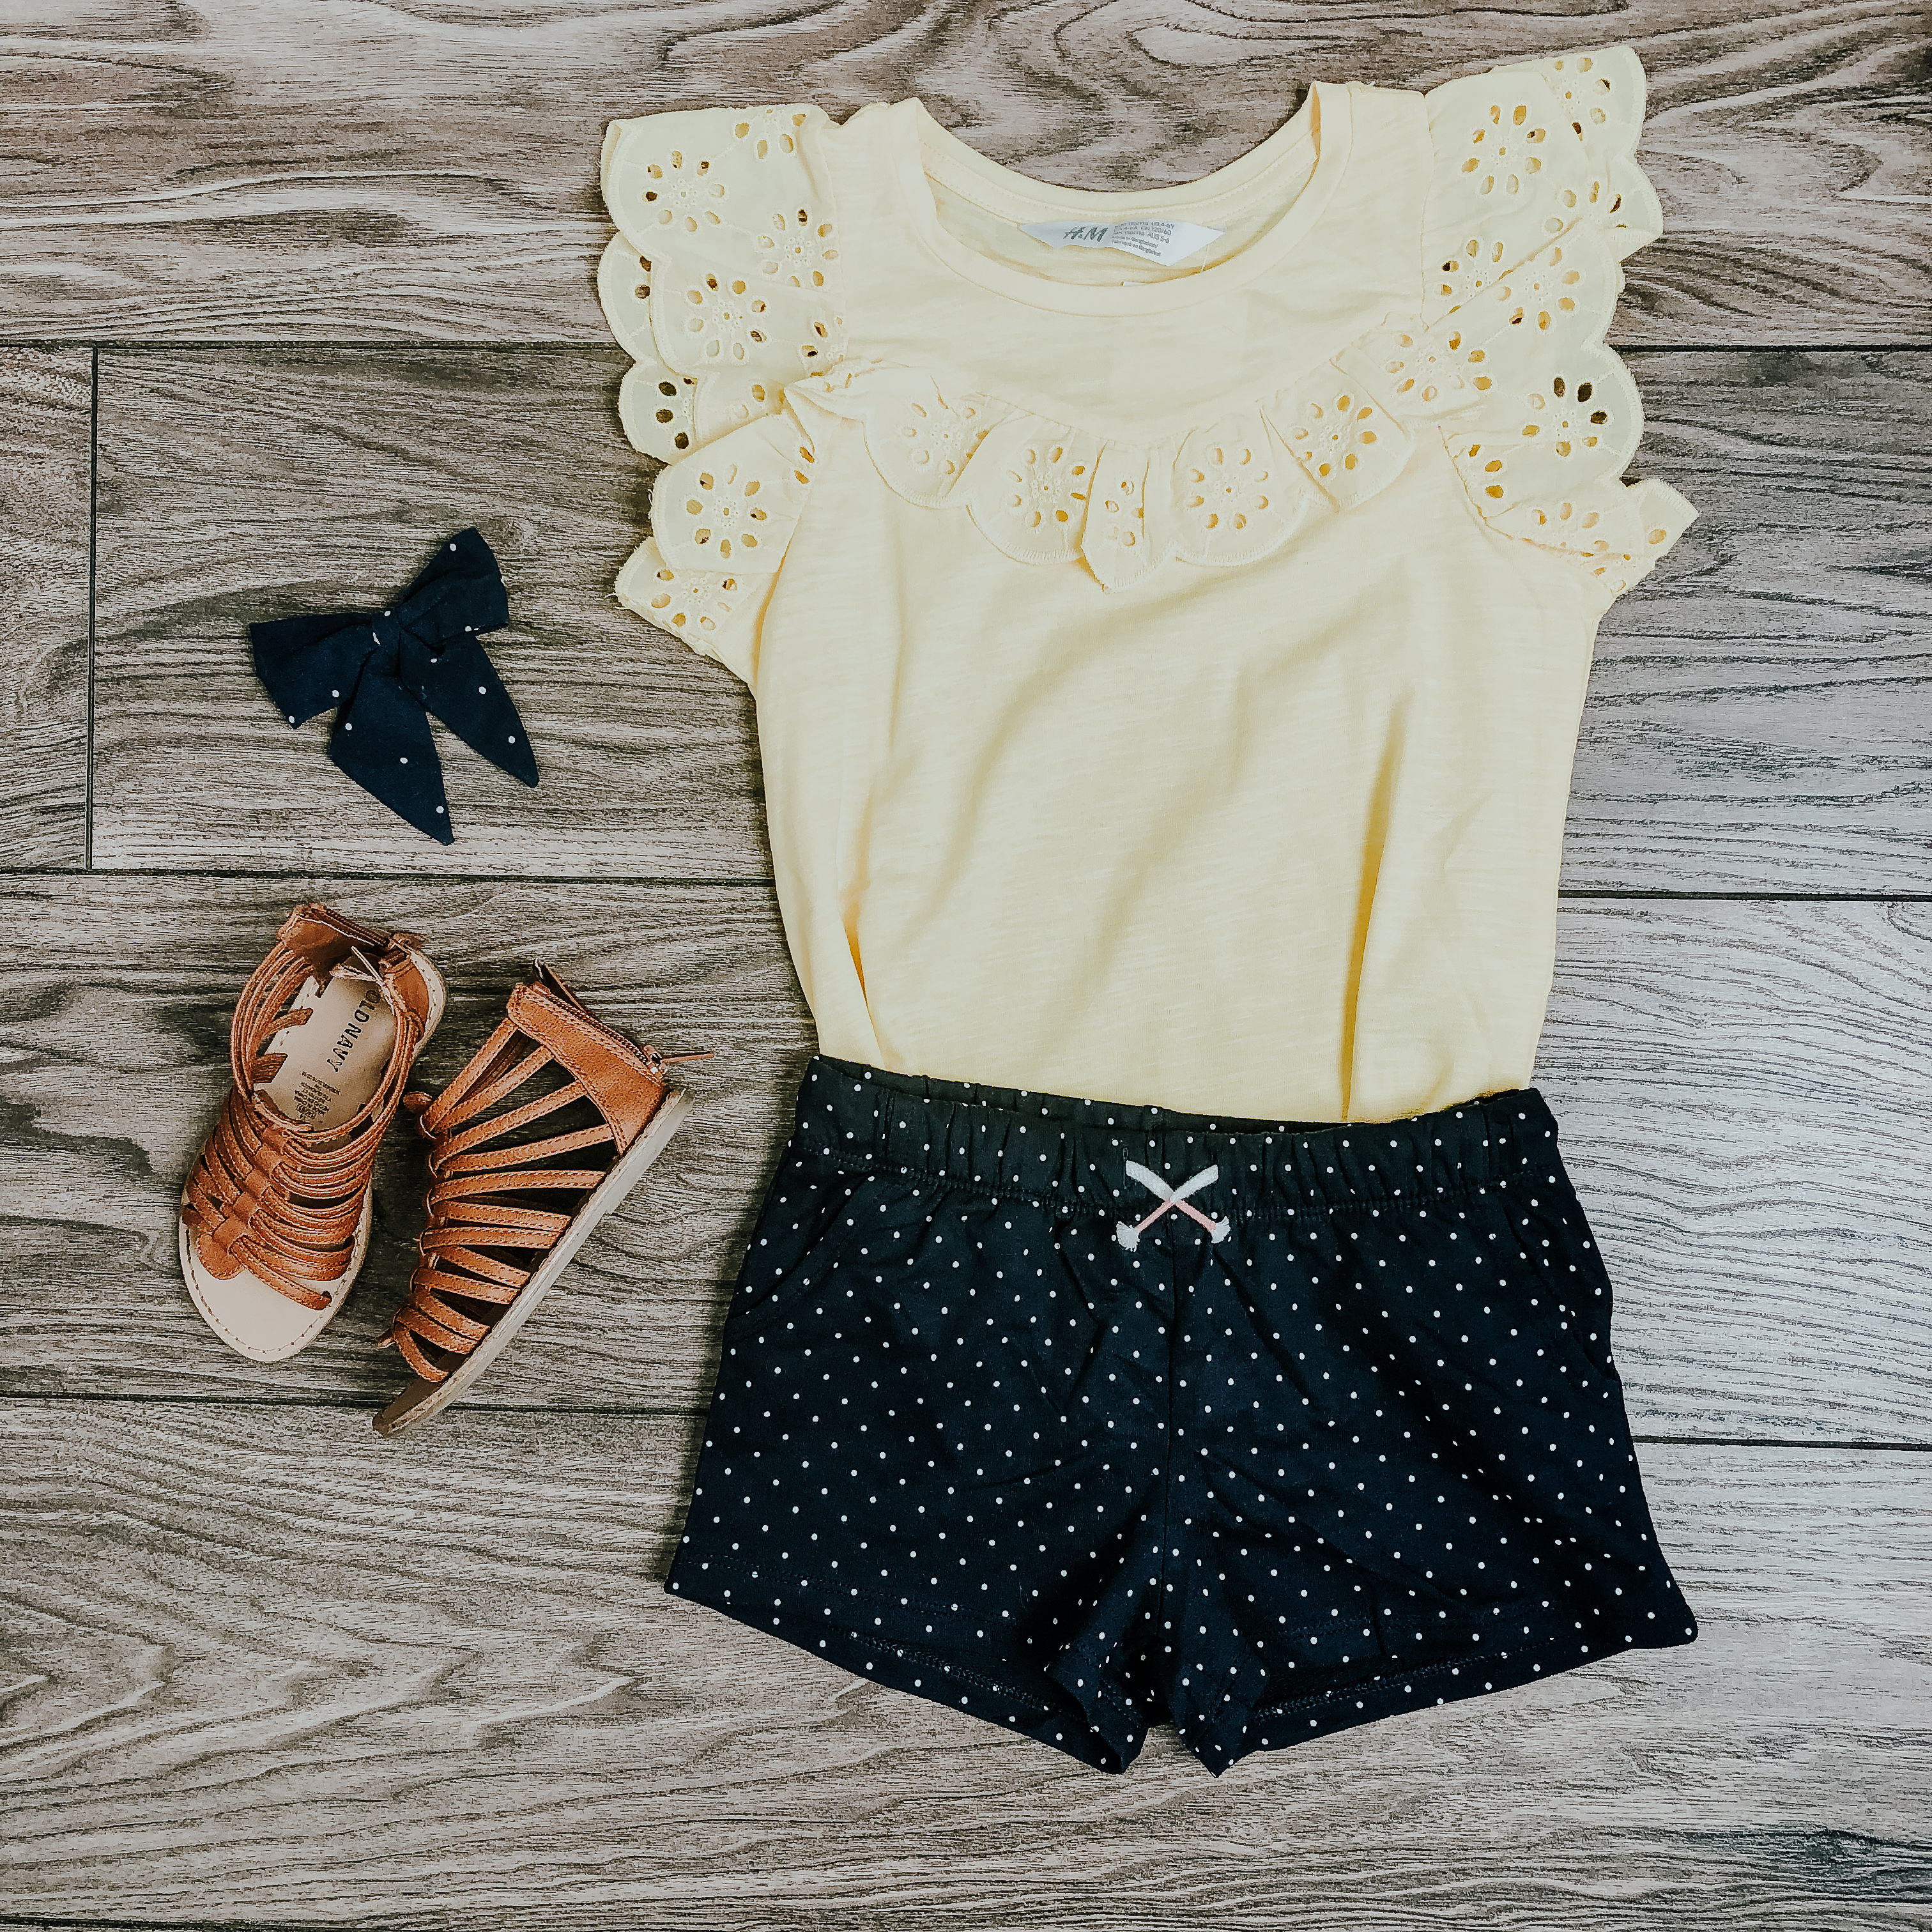 Spring outfits for little girls